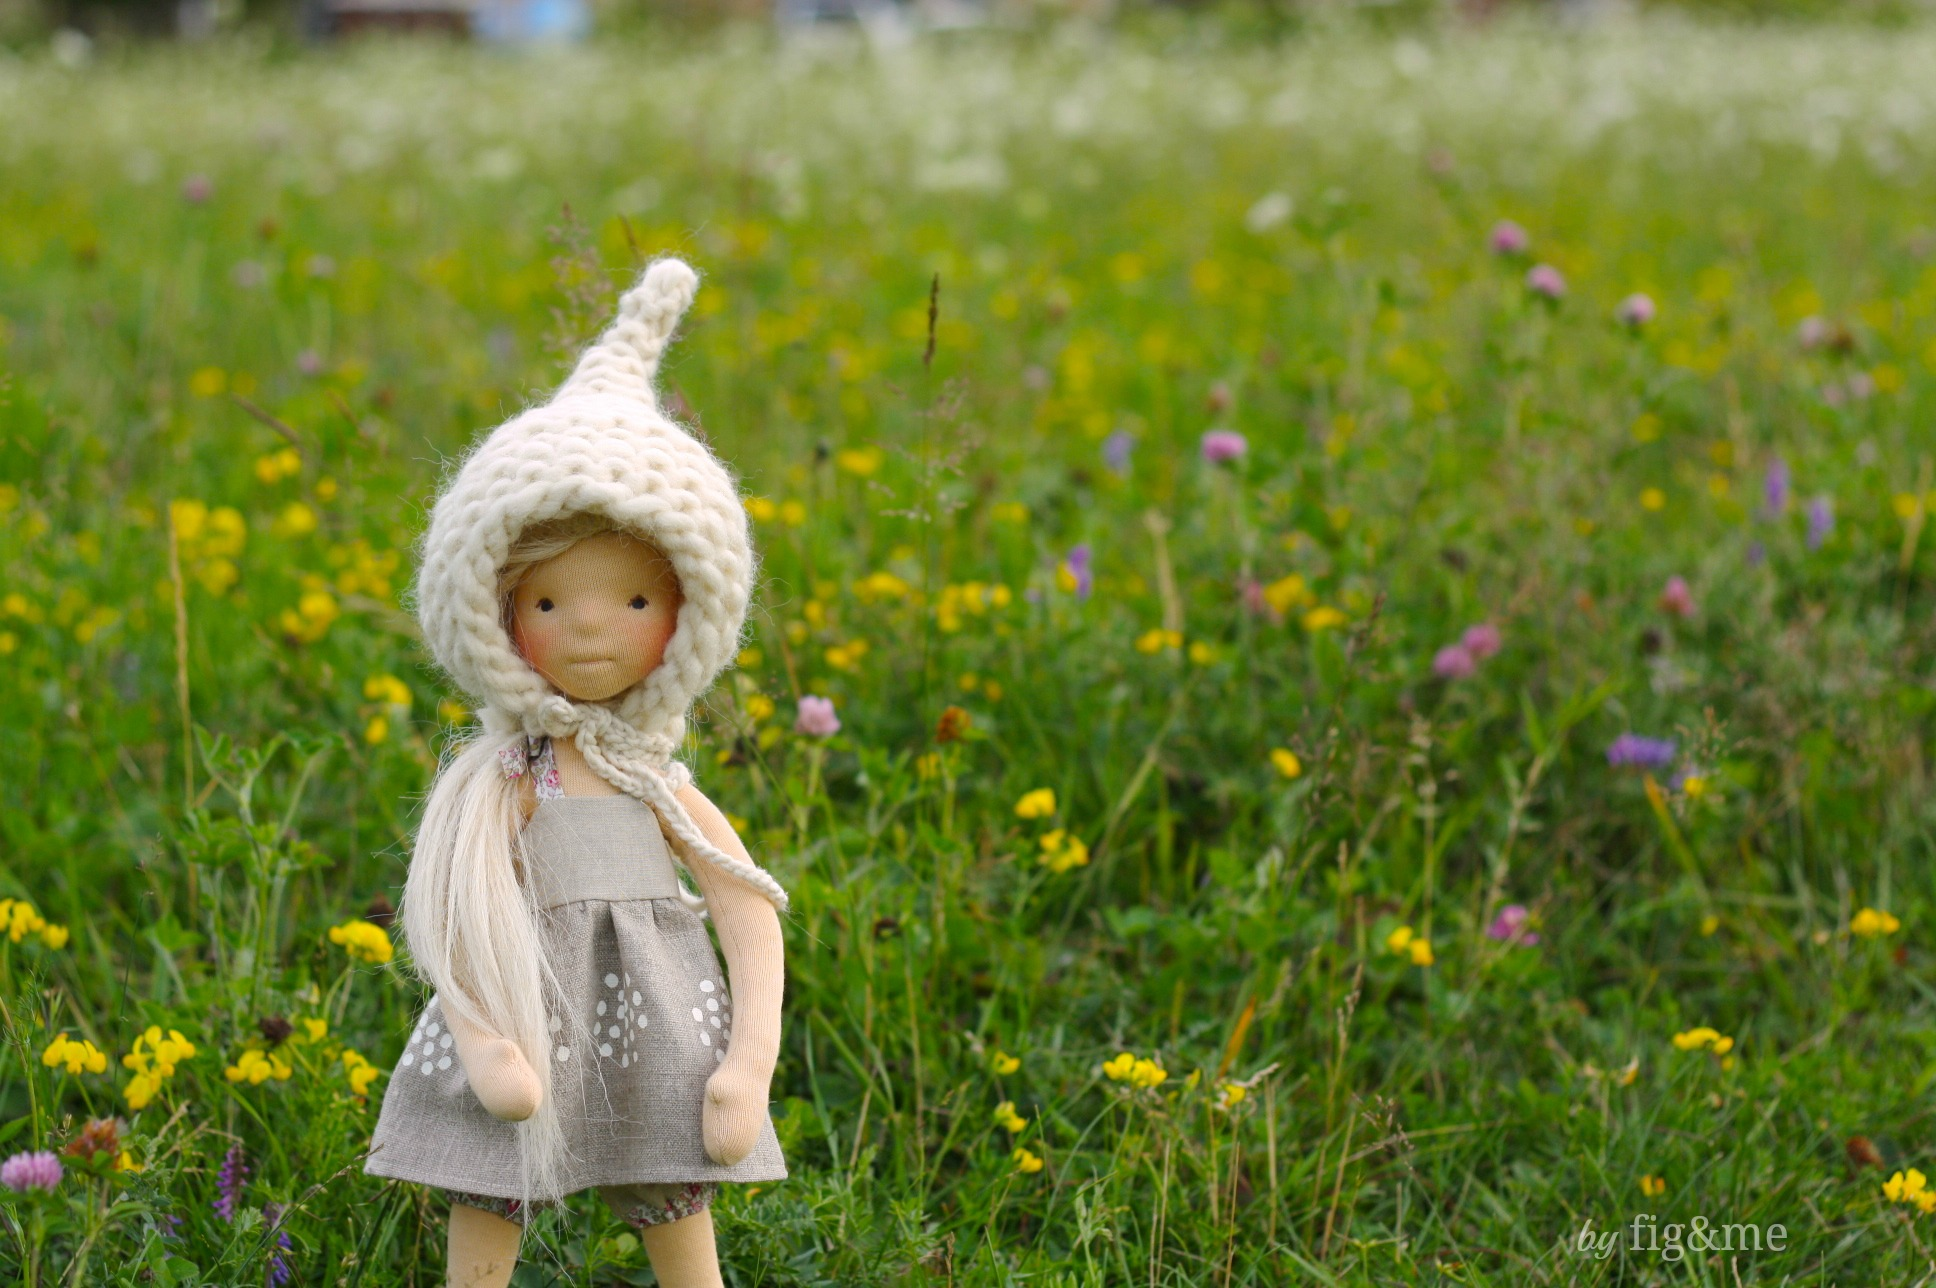 Cygnet, a natural art doll. By Fig and me.